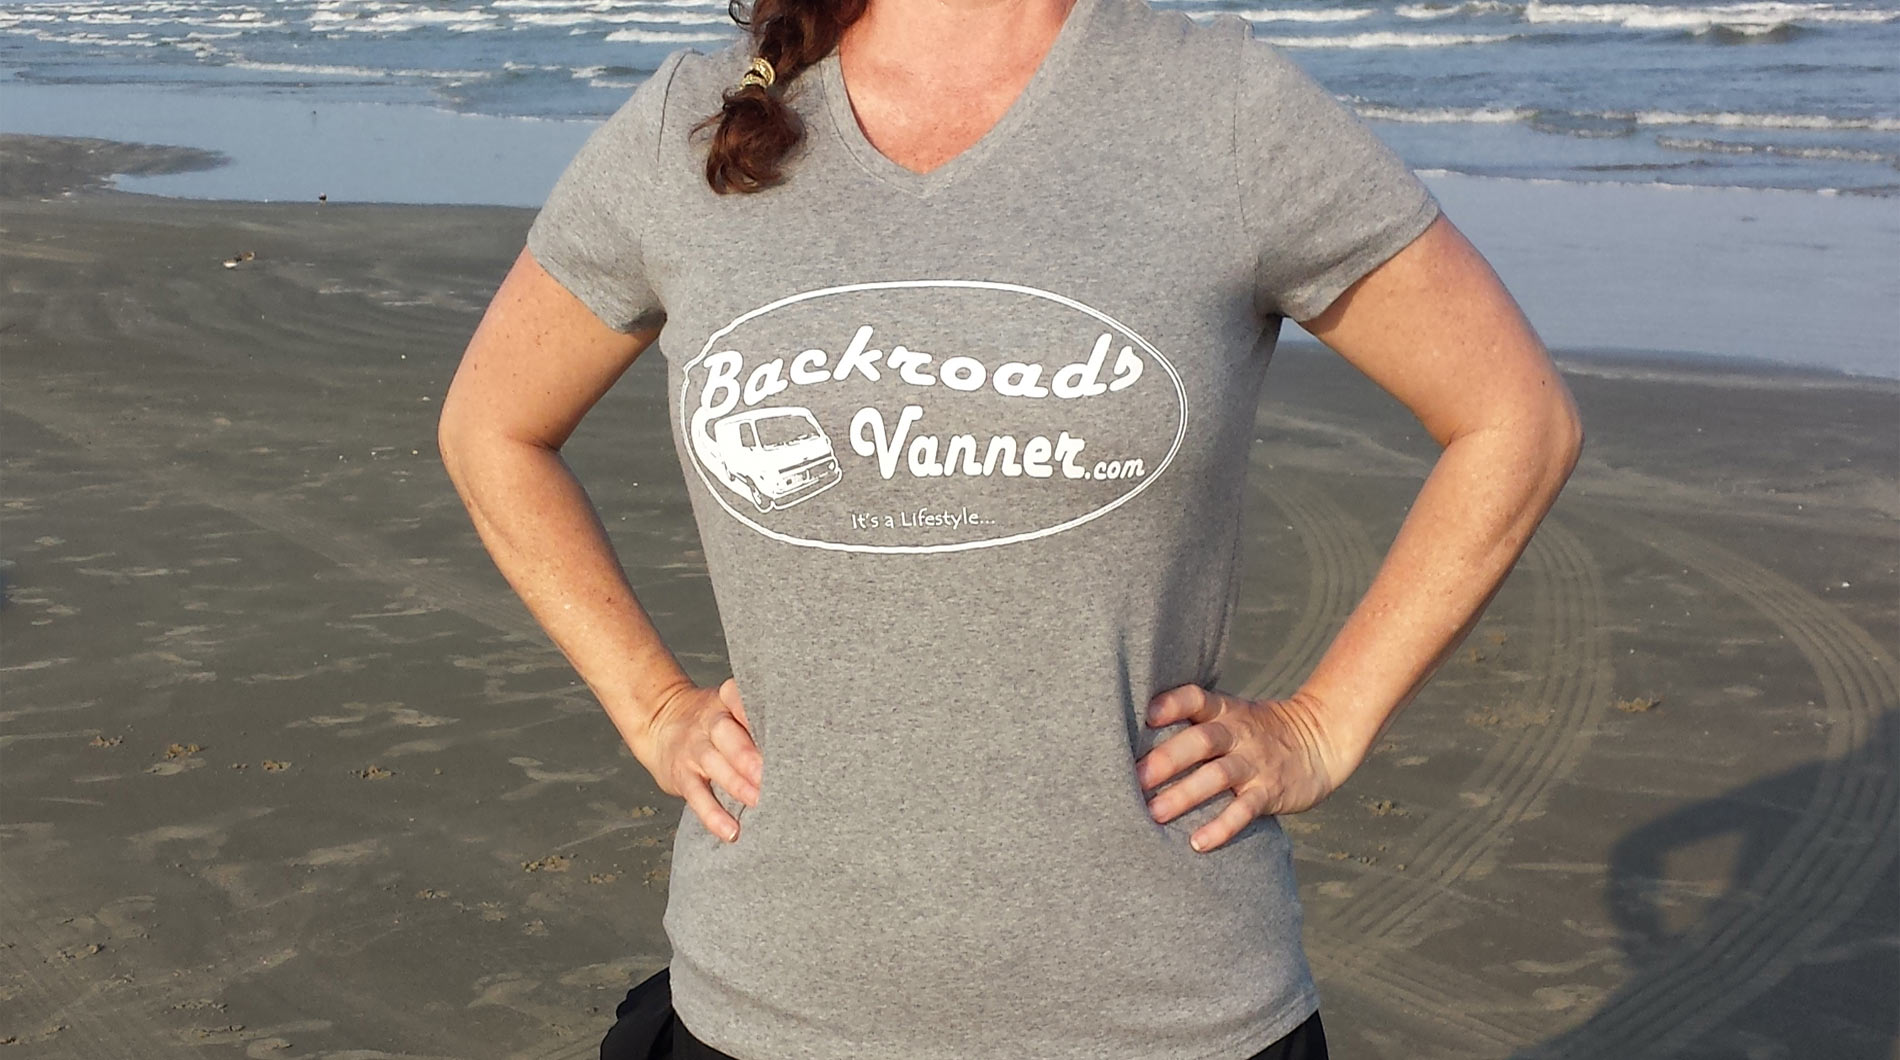 Women's Grey/White V-Neck T-Shirt with Vintage Backroads Vanner Logo